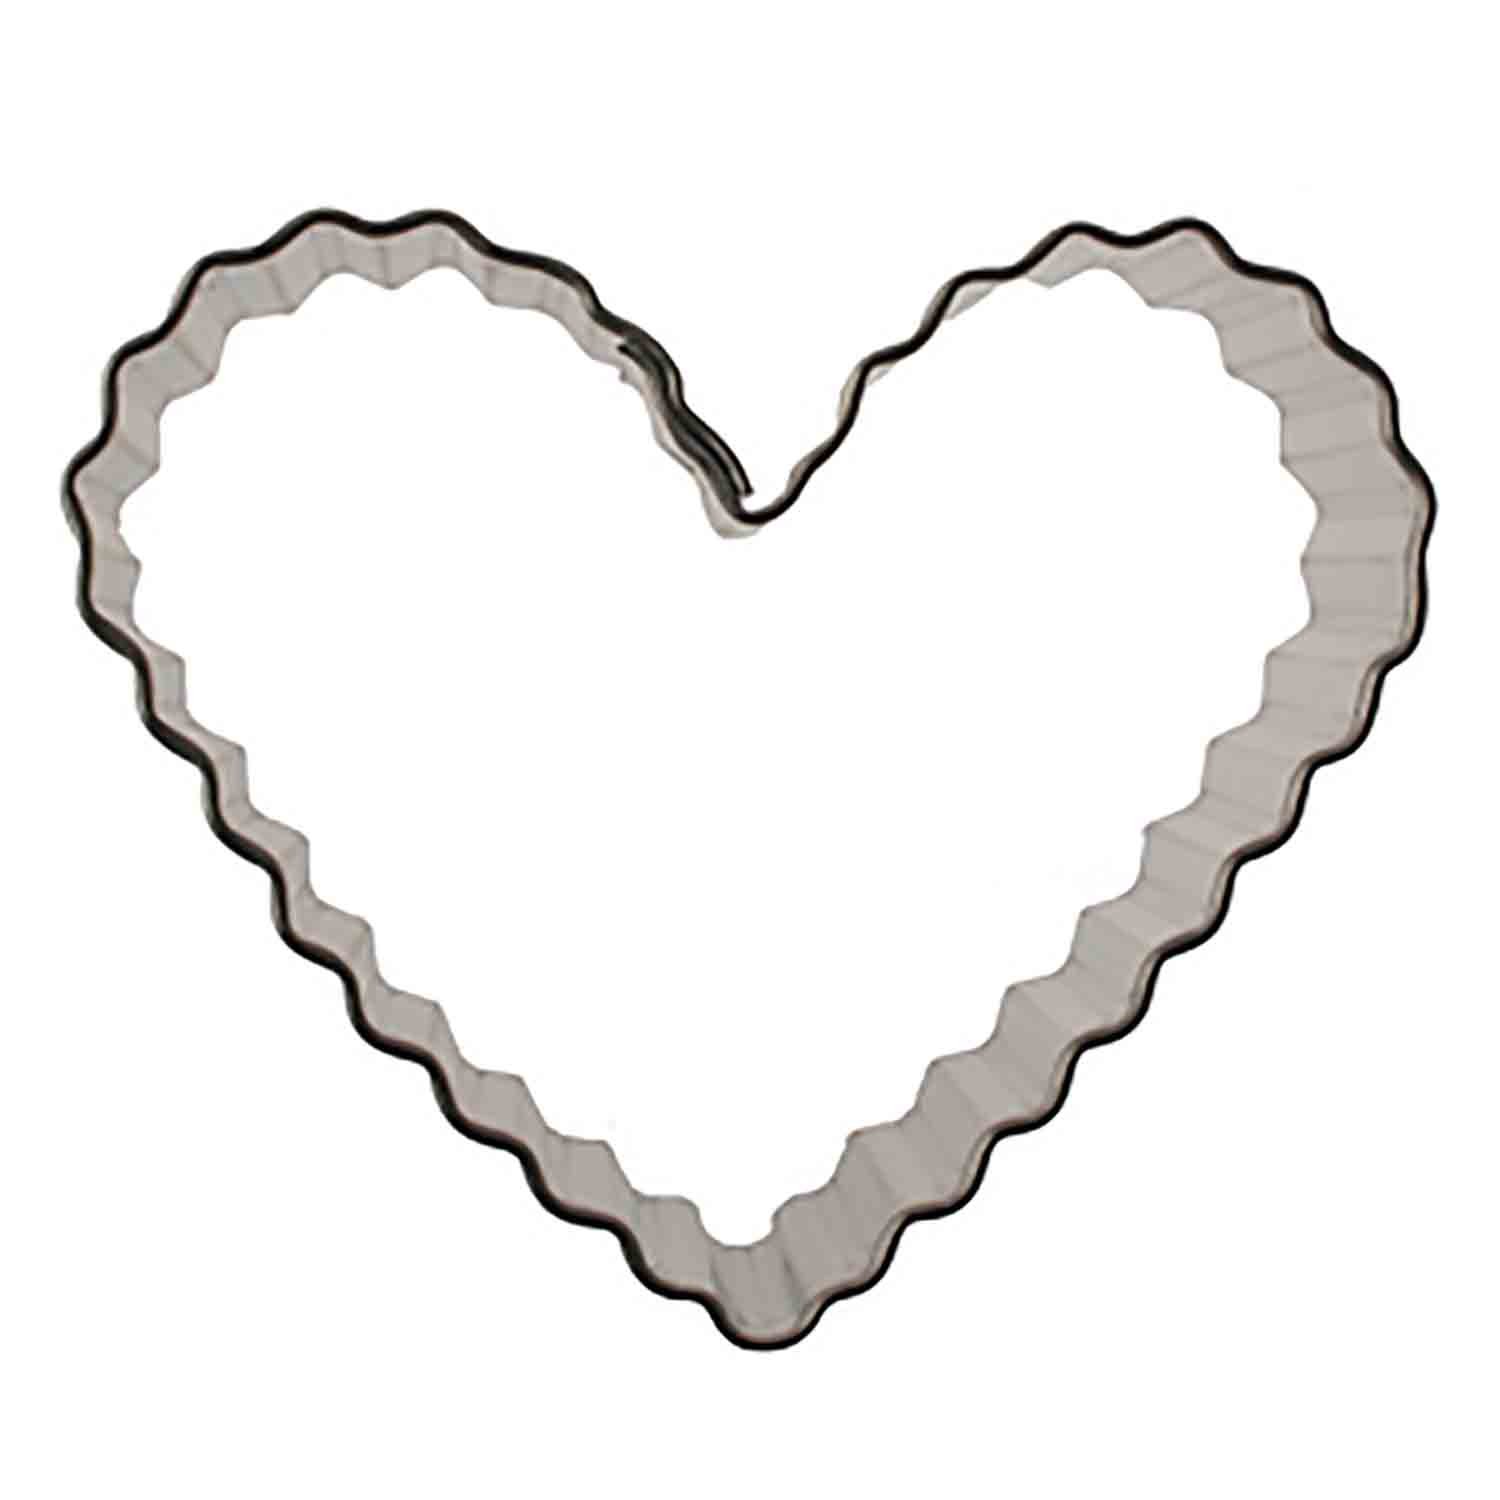 Fluted Heart Cookie Cutter